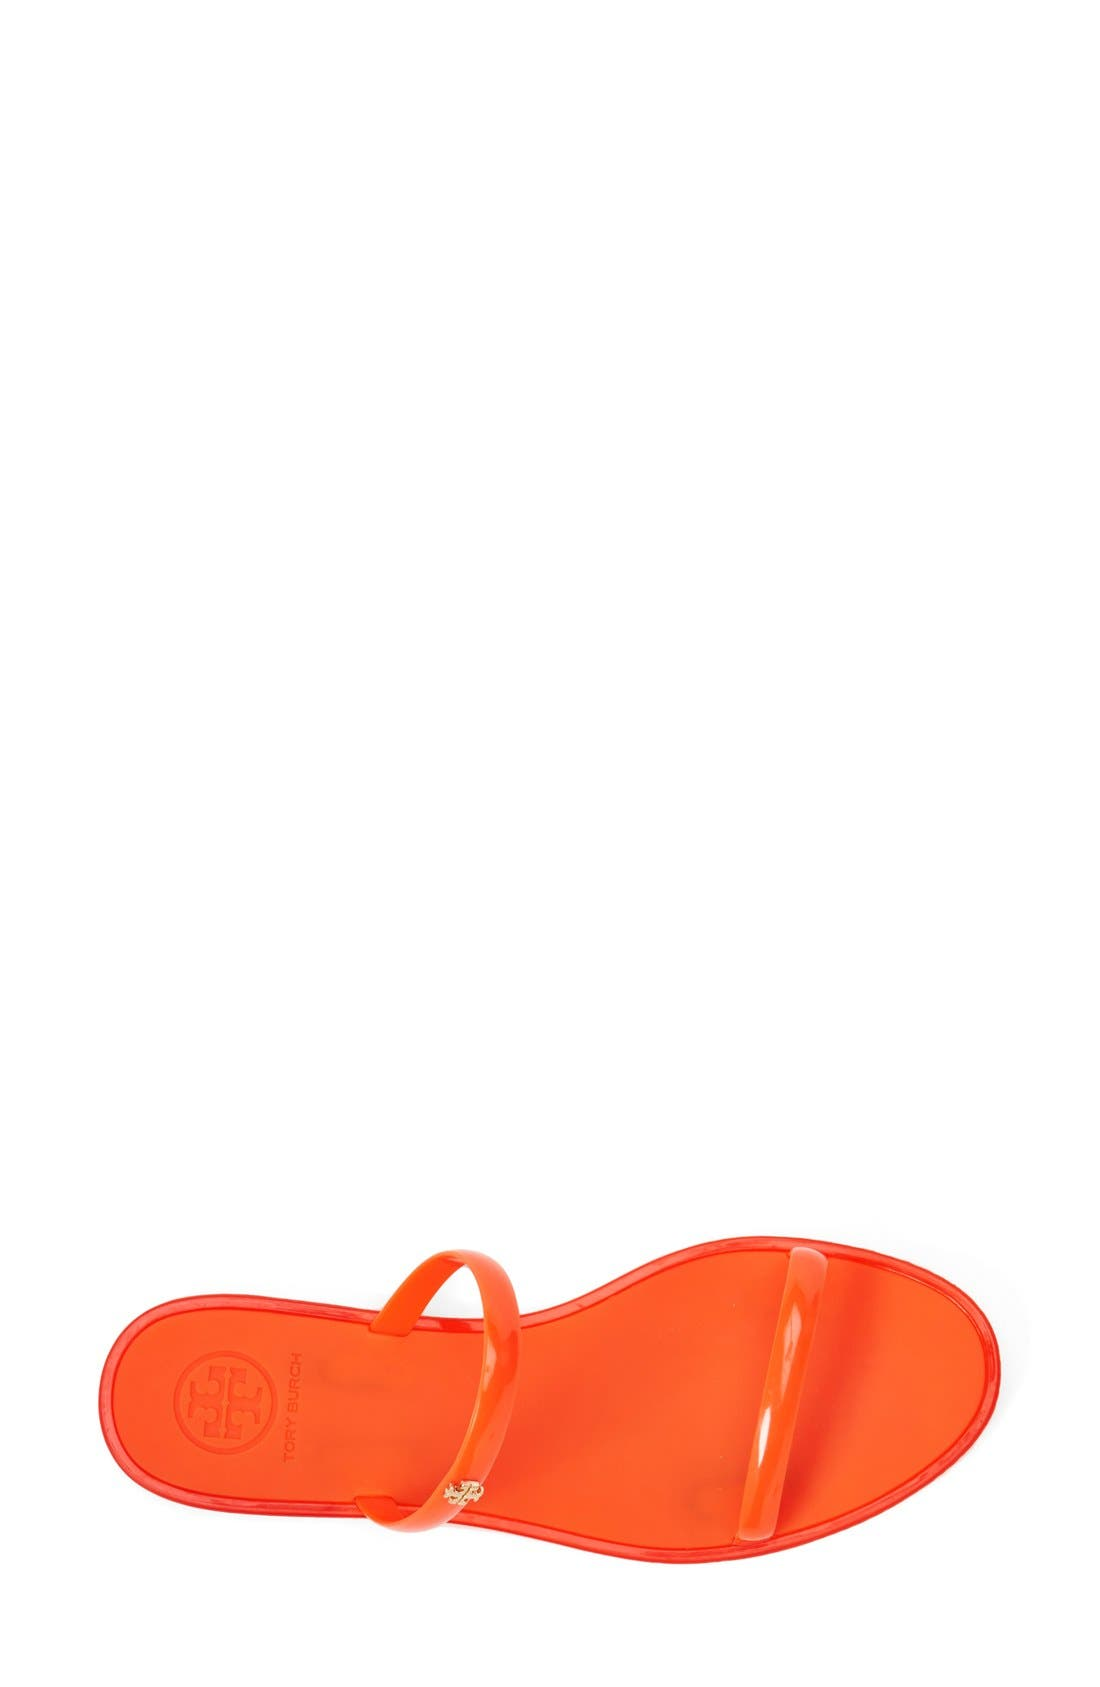 Alternate Image 3  - Tory Burch Jelly Sandal (Women)